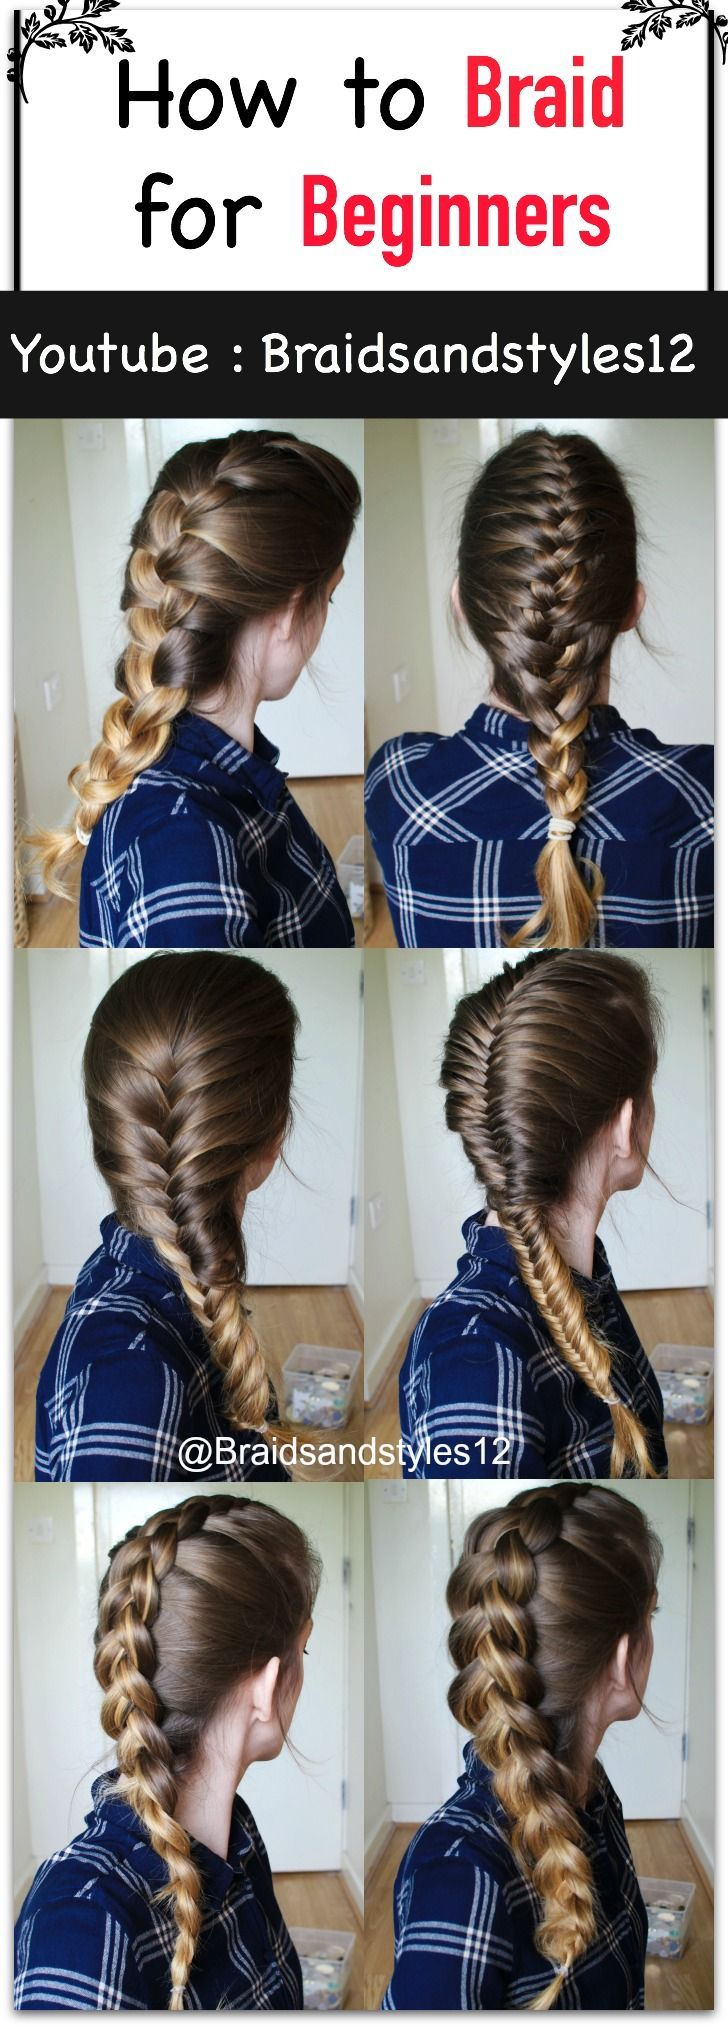 Best Braiding Your Own Hair Ideas On Pinterest Braids - Braid diy pinterest